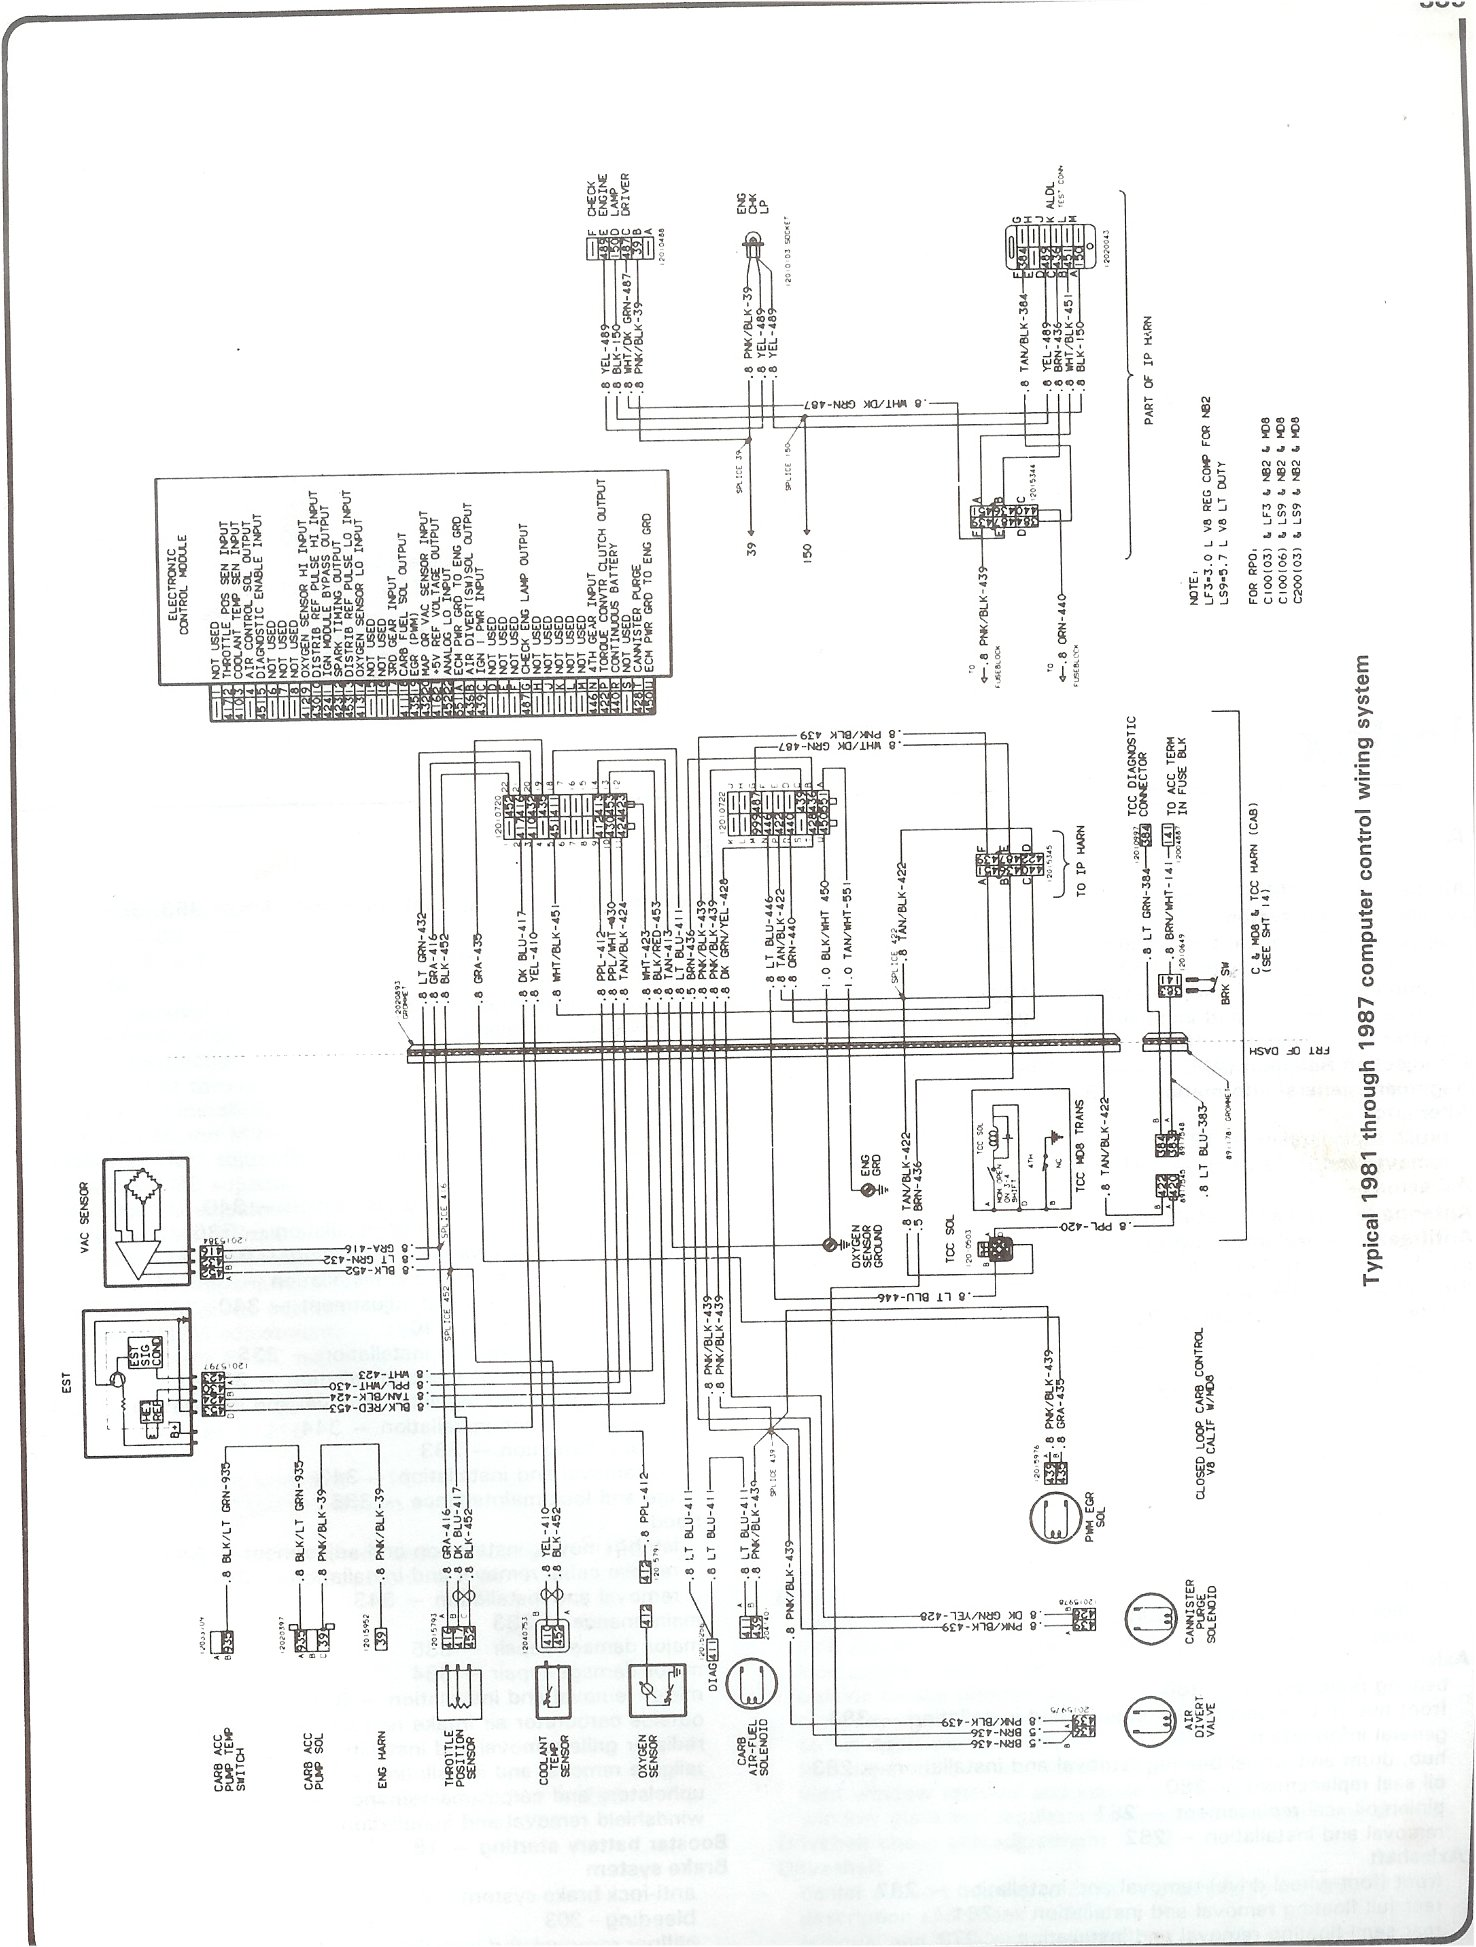 81 87_computer_control_wiring complete 73 87 wiring diagrams 1979 Pontiac Wiring Diagram at n-0.co